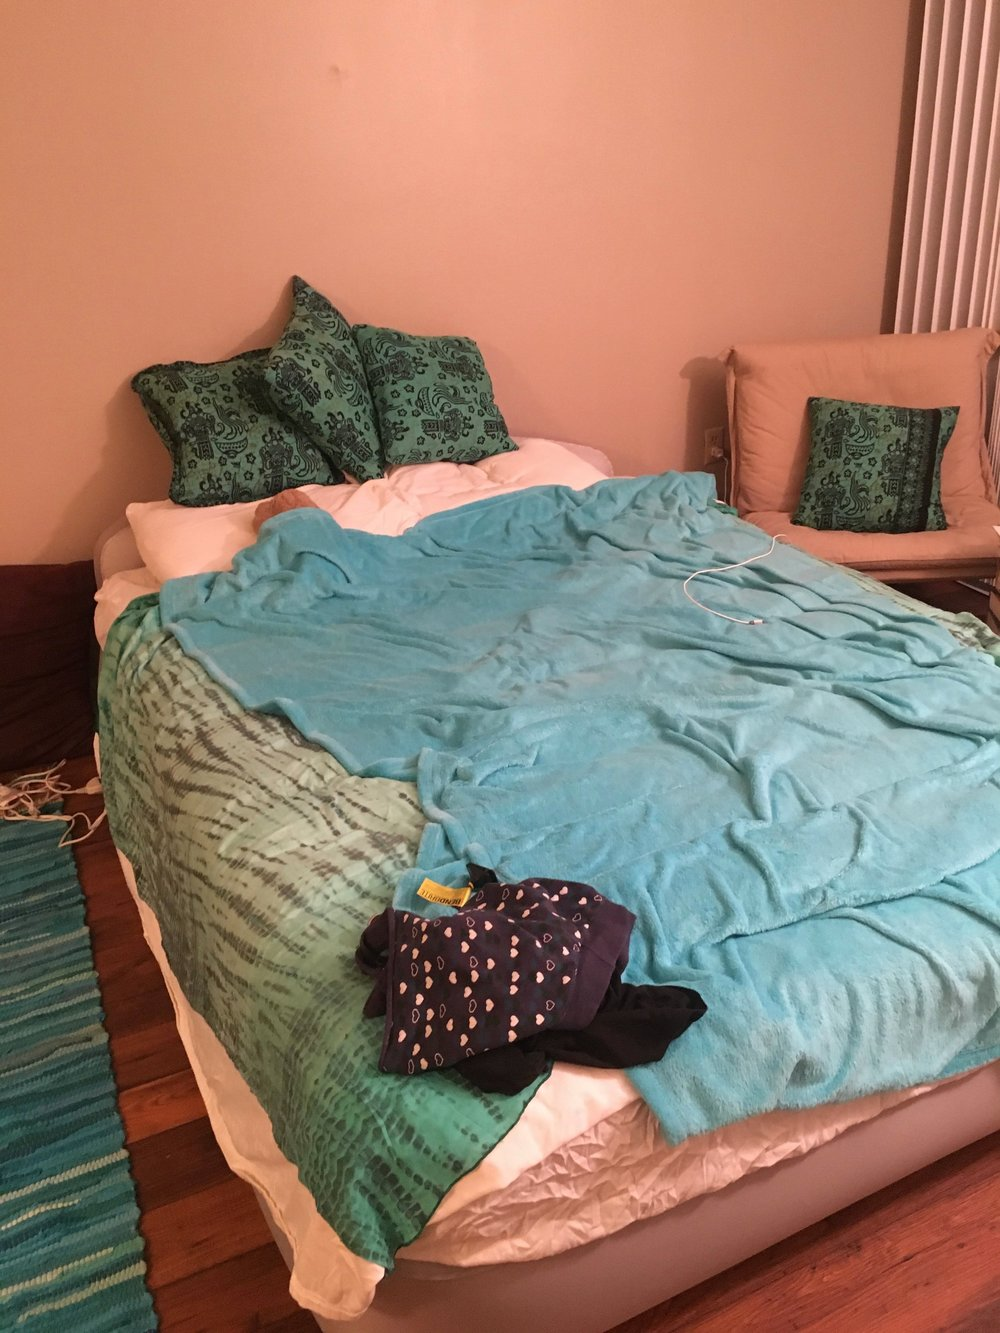 Blanket made from Ombre Tie Dyed Sarongs and Throw Pillows made from Traditional Balinese Batik Print Cotton Sarongs